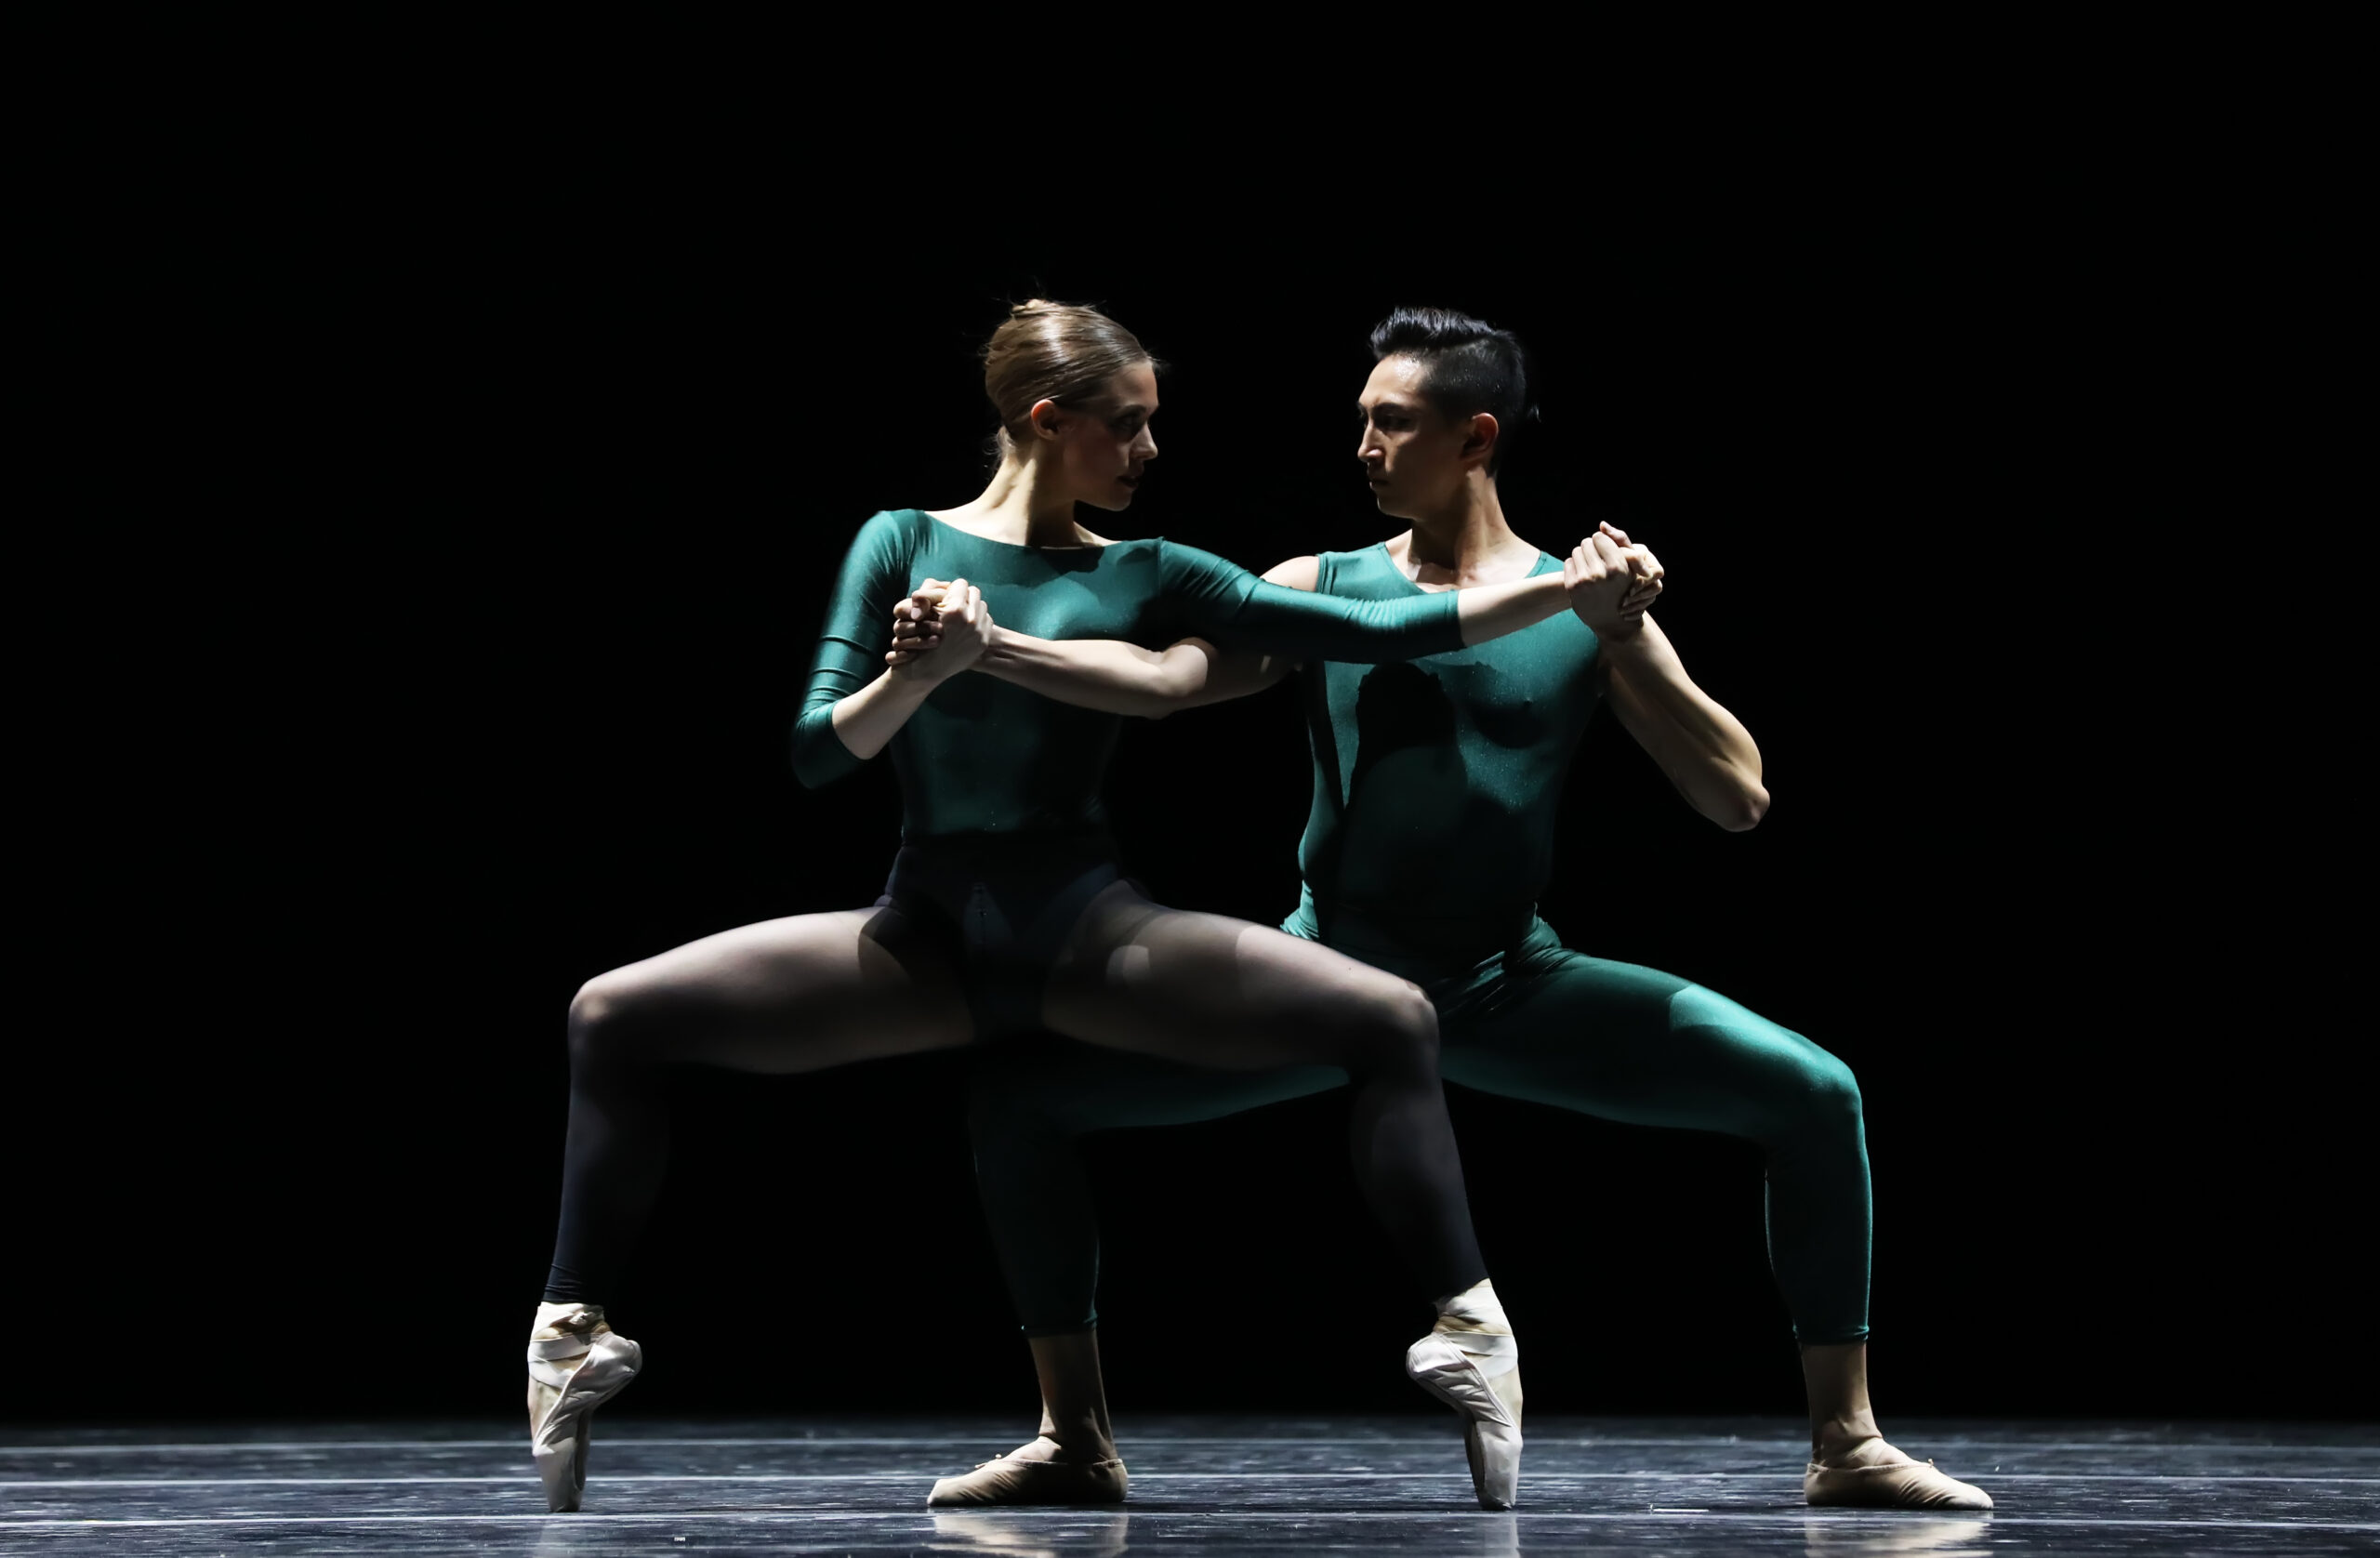 Male & Female pair in green leotards